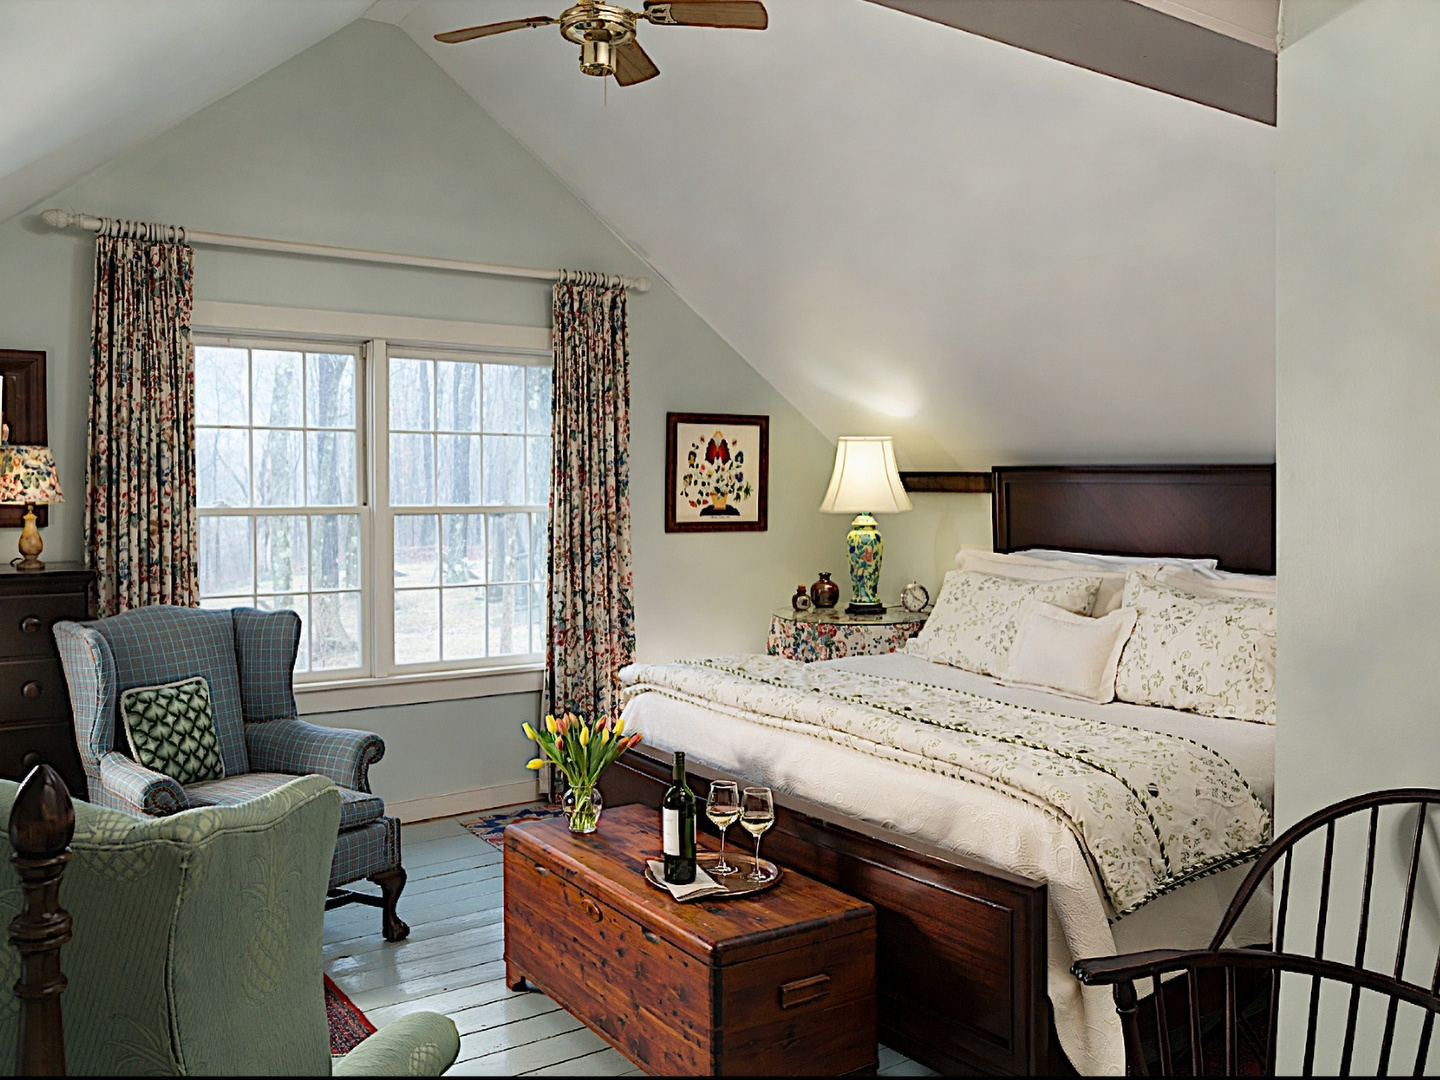 A bedroom with a bed and furniture in a room at The Inn at Green River.